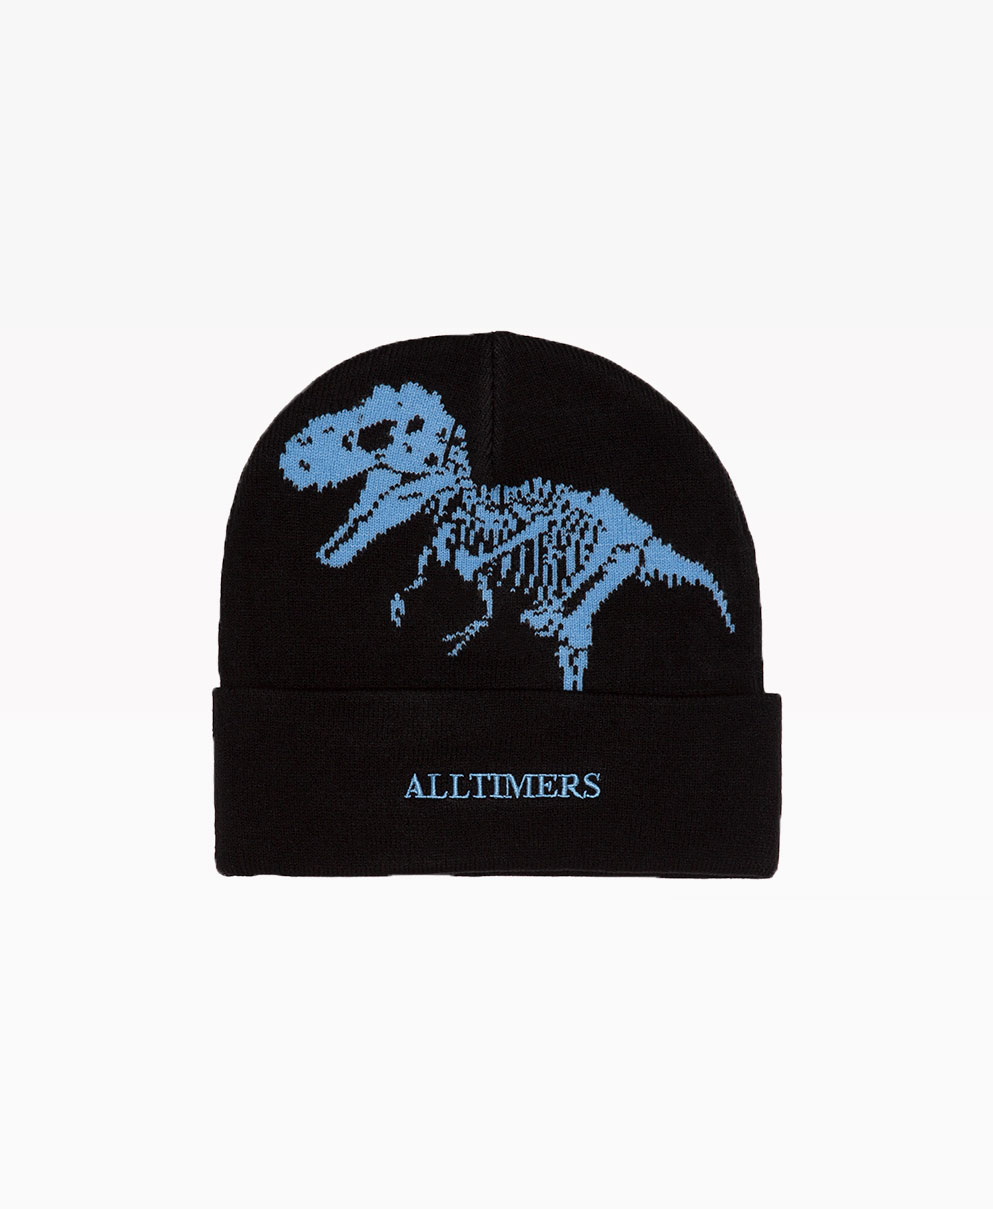 Alltimers Nh Beanie Navy Front